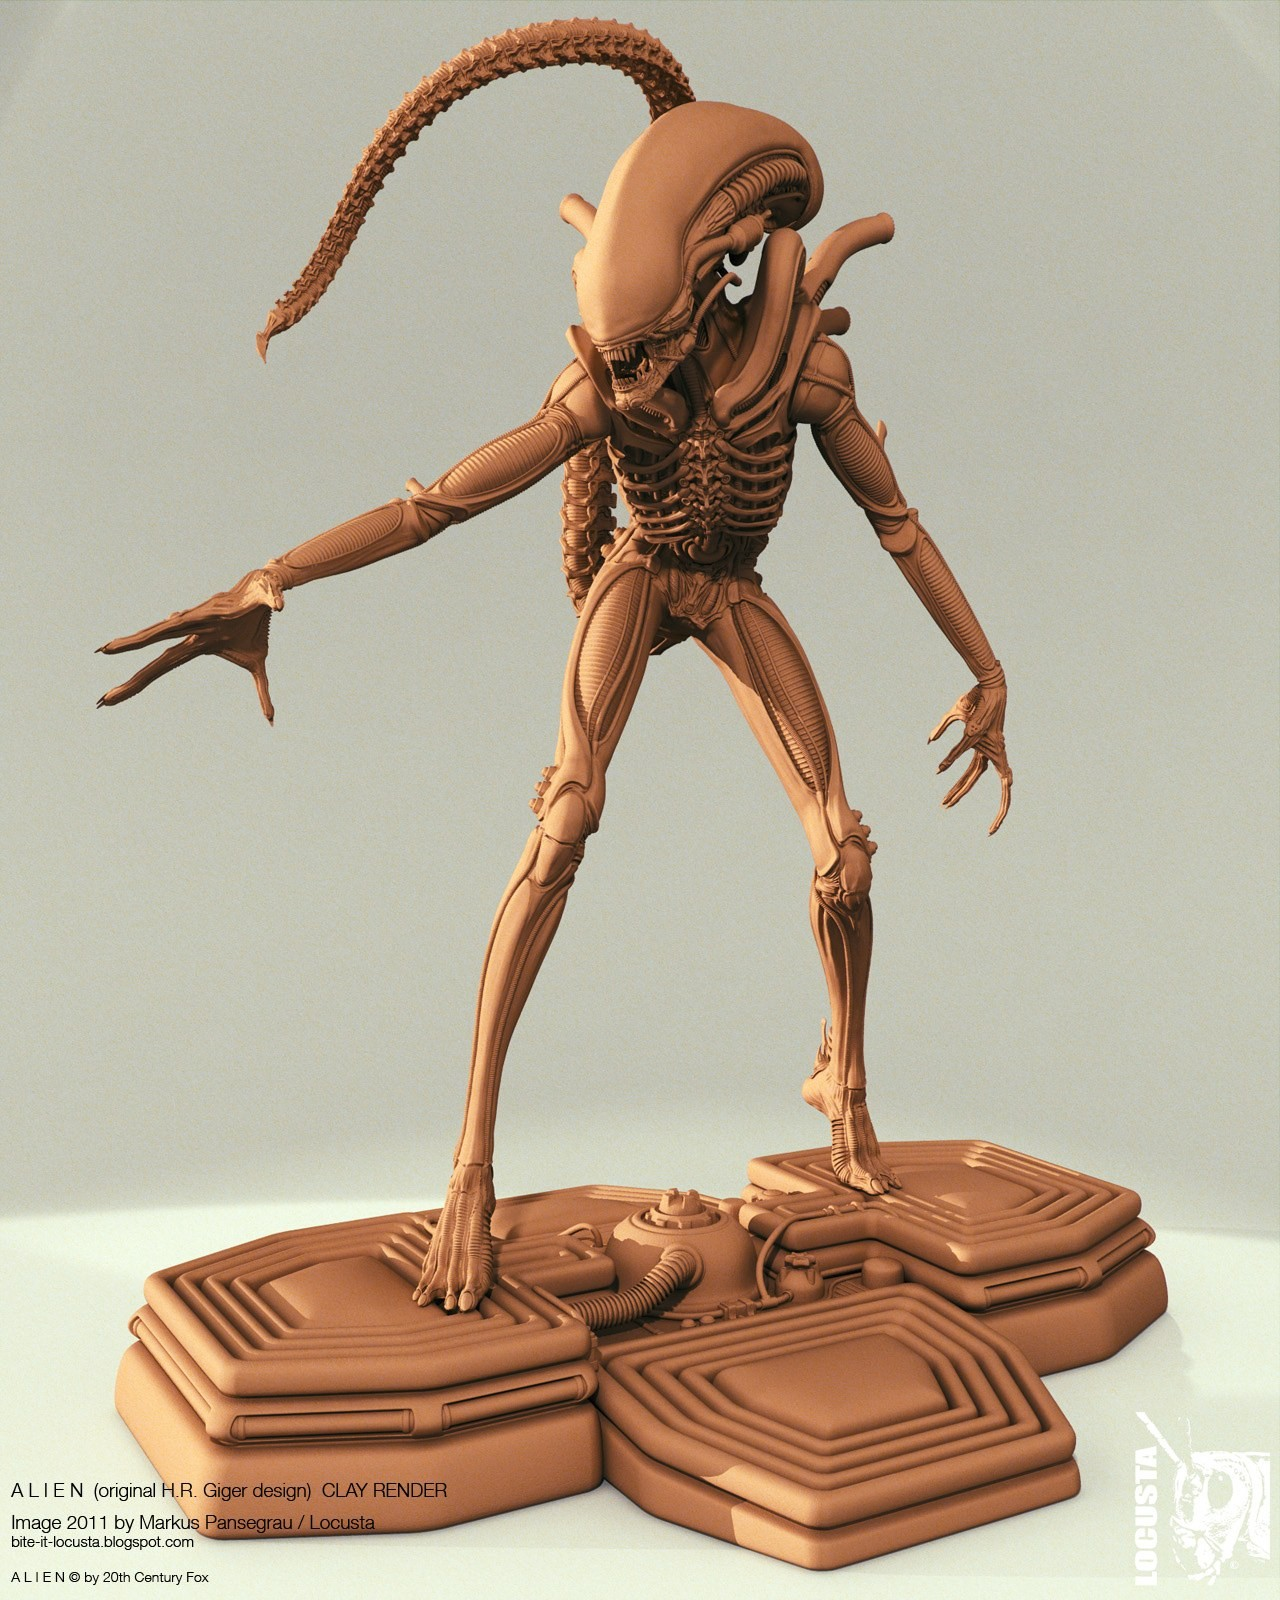 ALIEN_clay_render.jpg